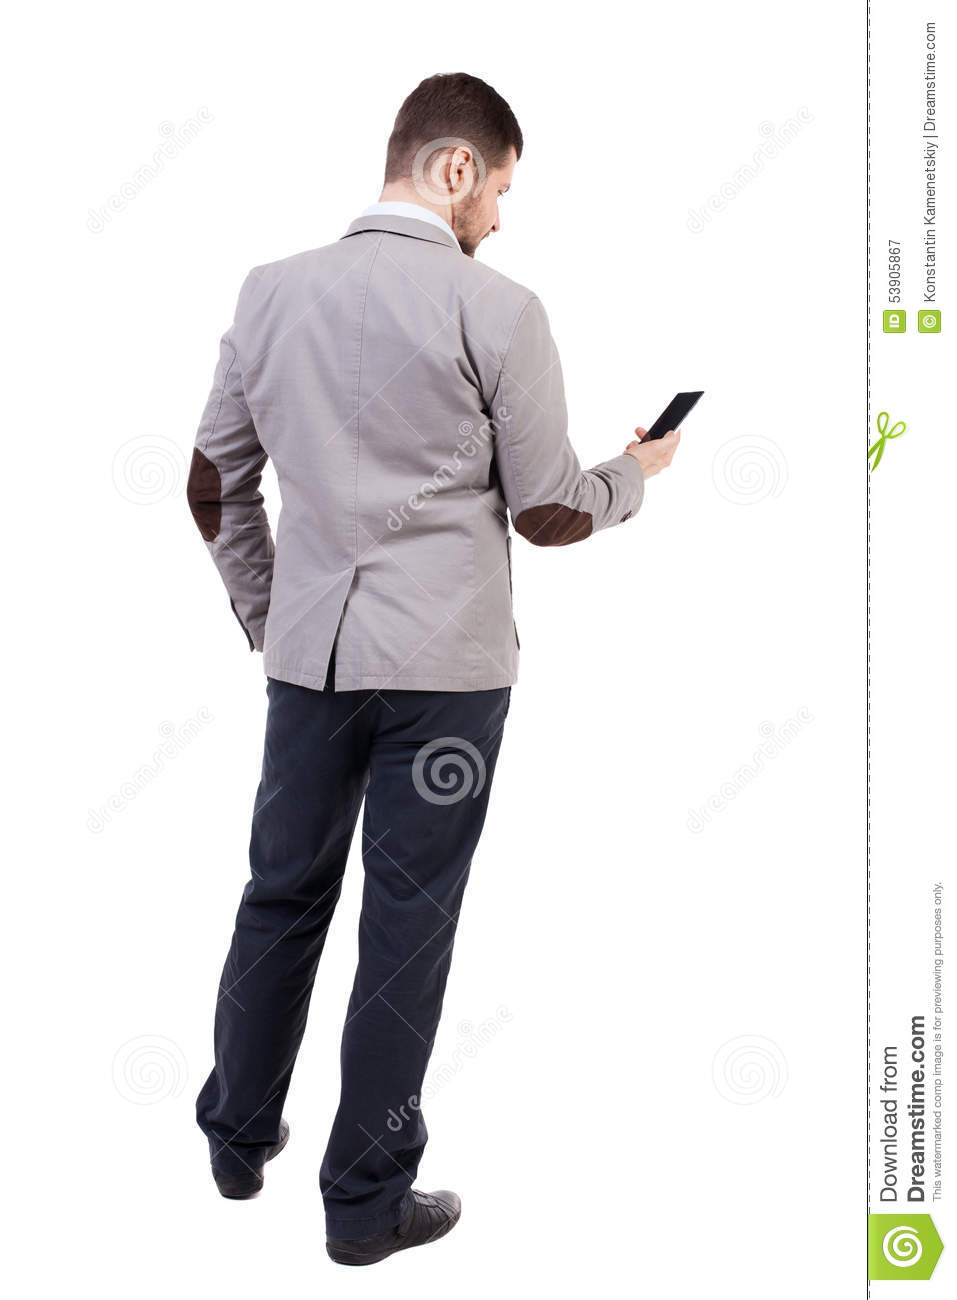 Back View Of Business Man In Suit Talking On Mobile Phone